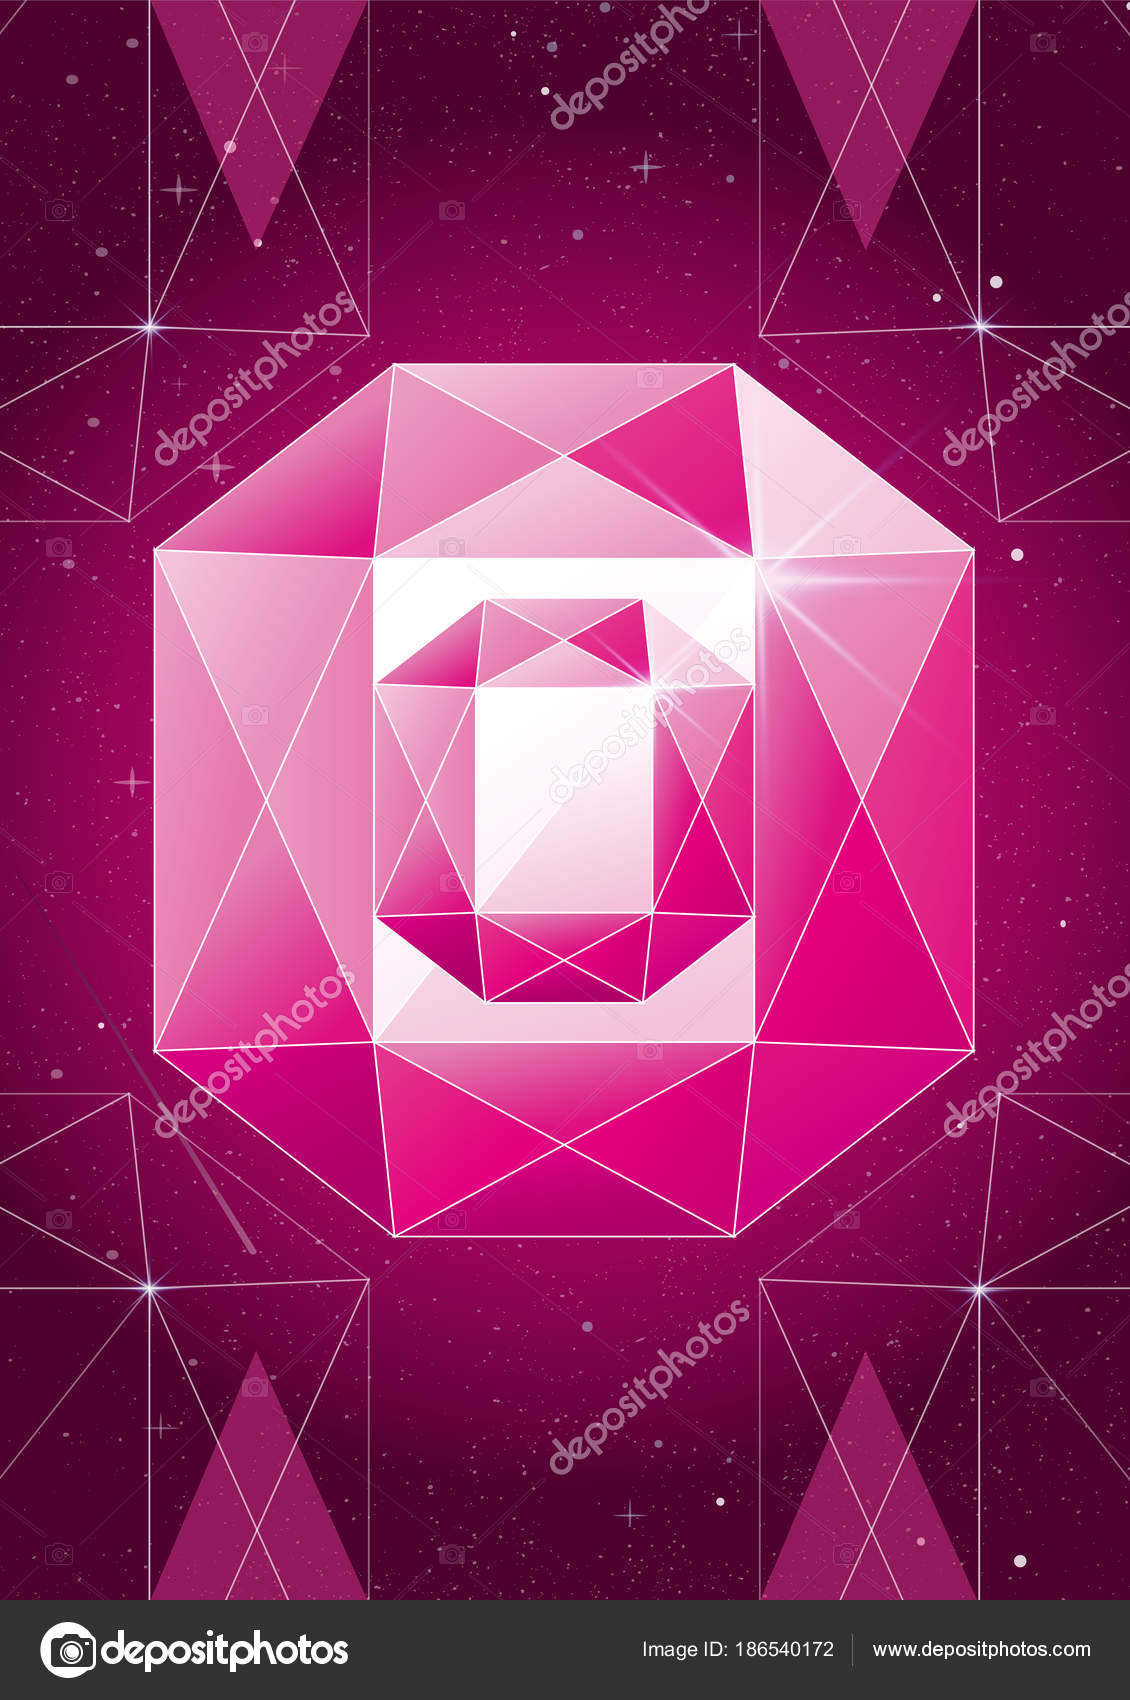 background brilliant colors justin wallpaperup wallpaper polygon pin diamond maller jewels black